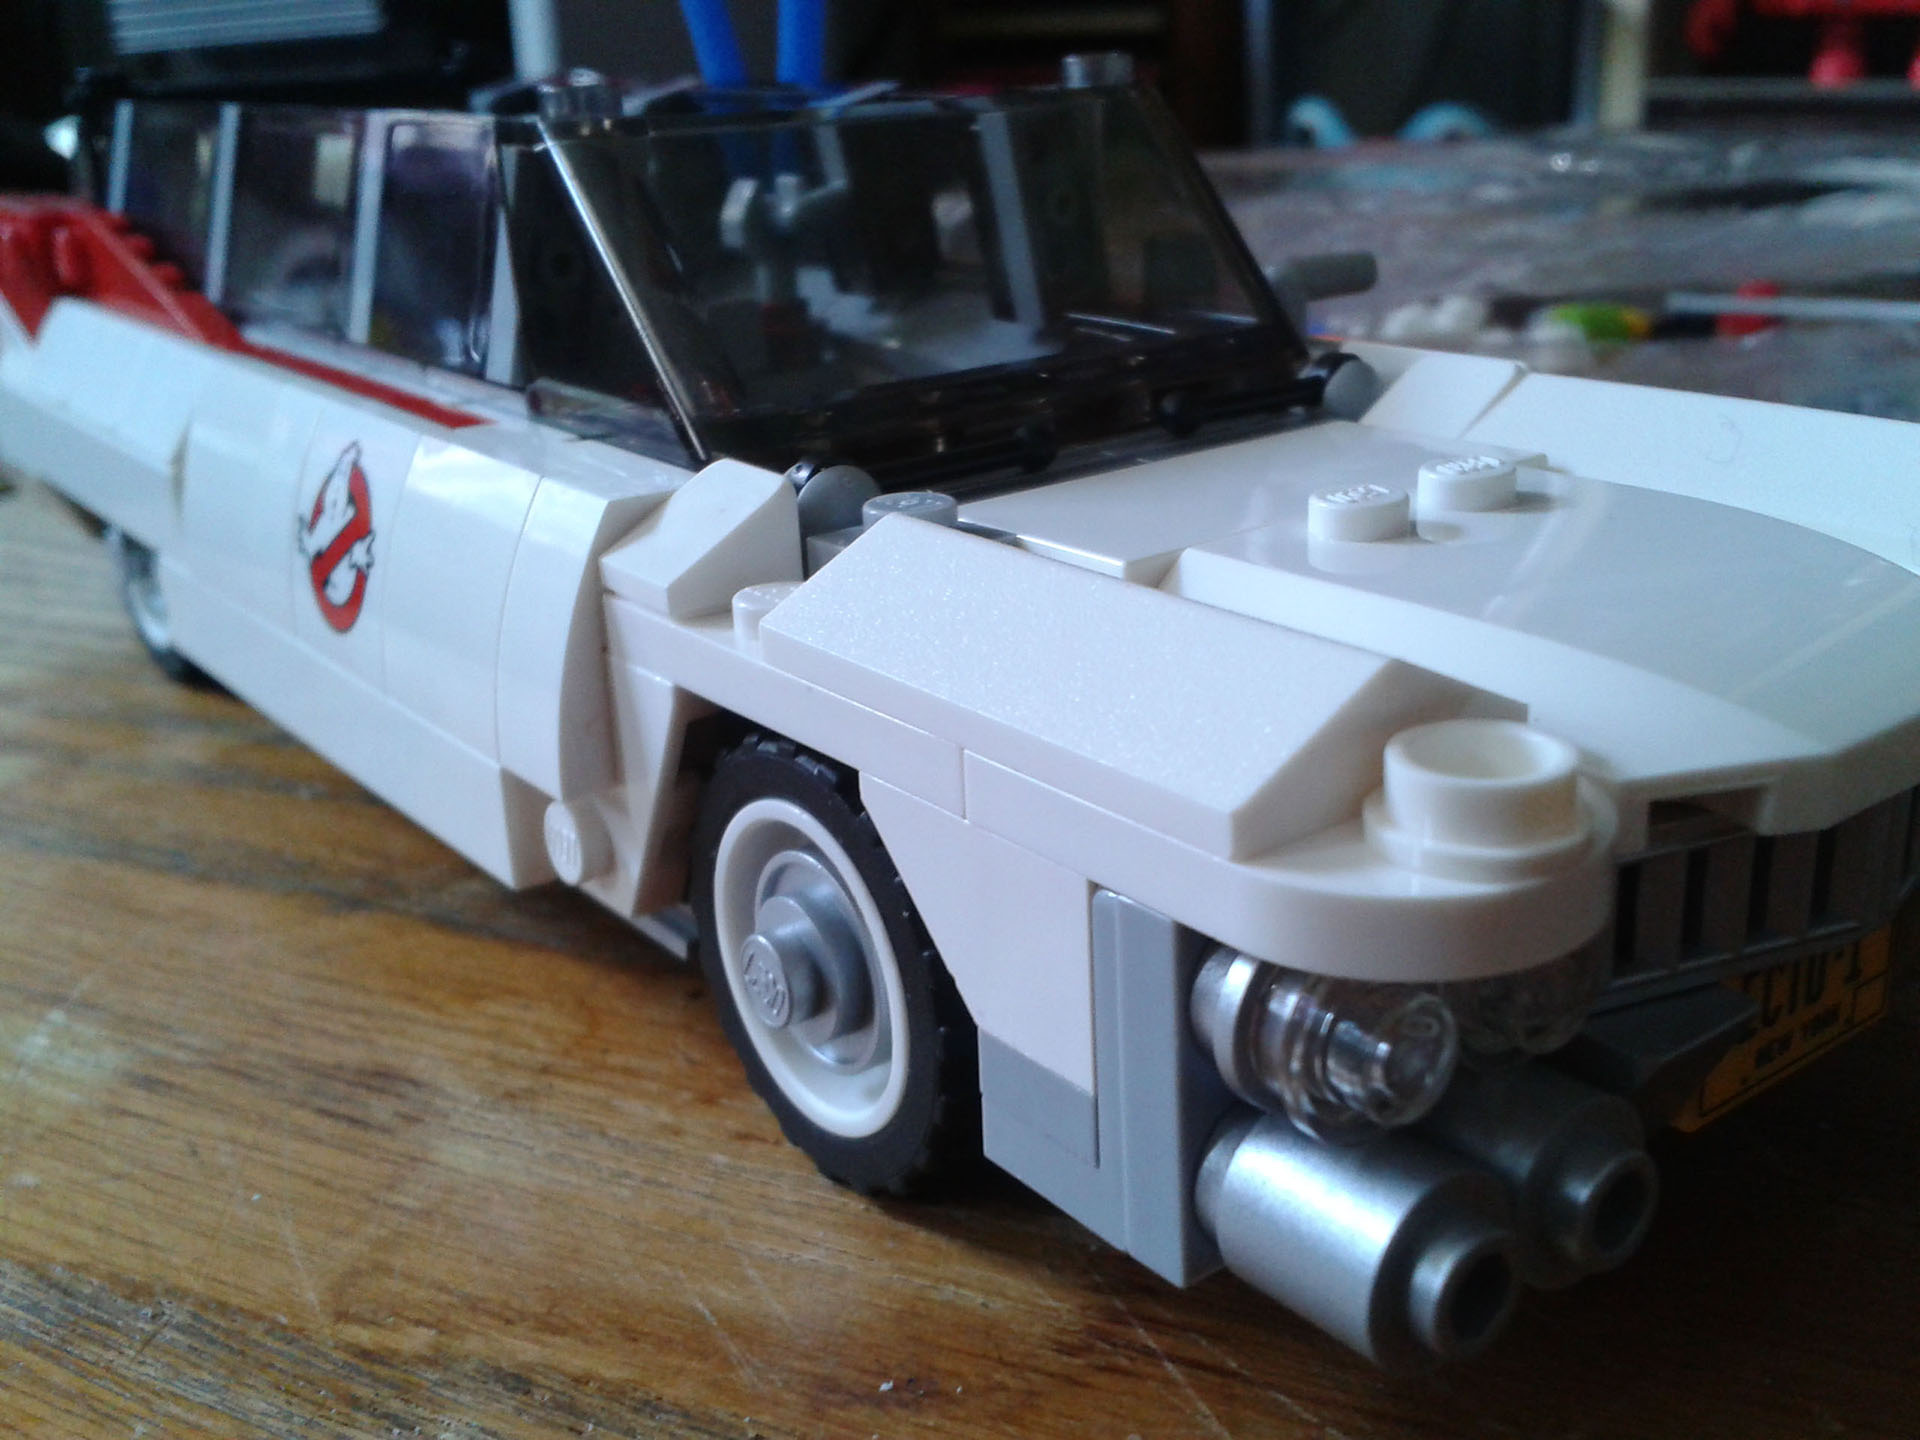 Lego Ecto-1 Car Body Completed